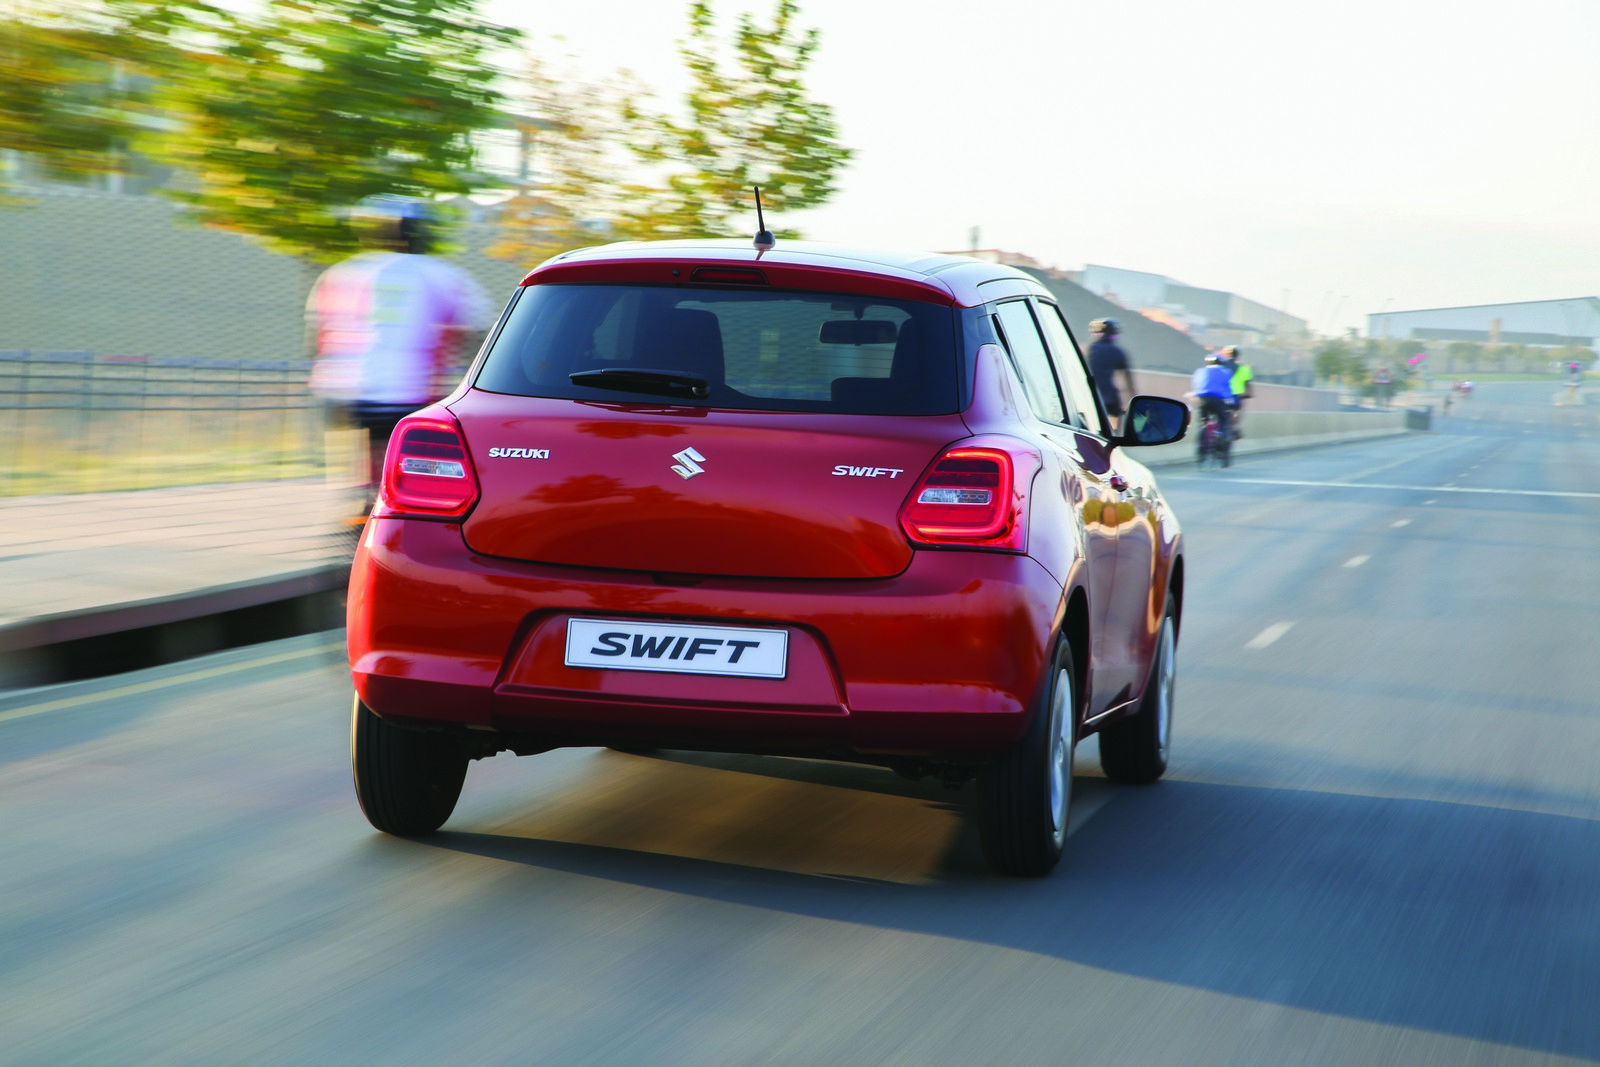 Feels good driving the all new swift